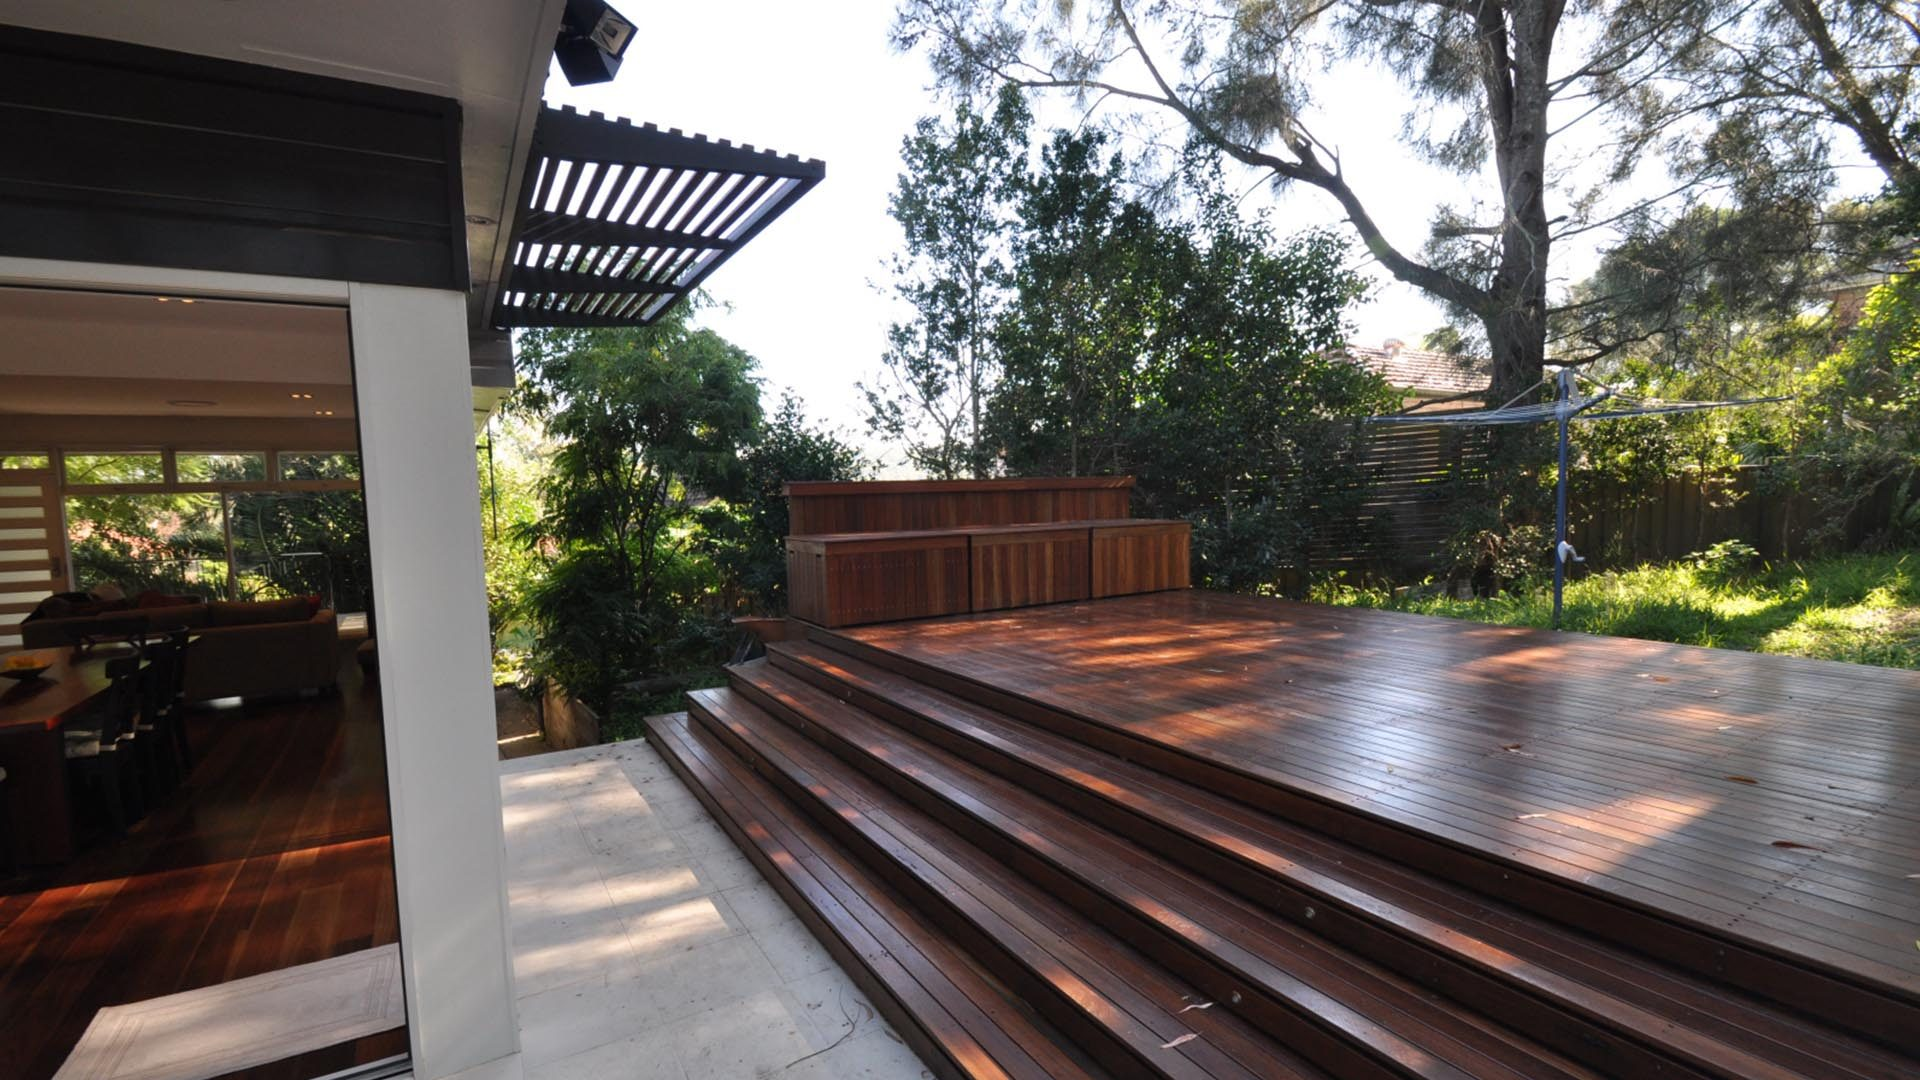 Ganora Outside tiered deck leading into yard with clothesline and grass